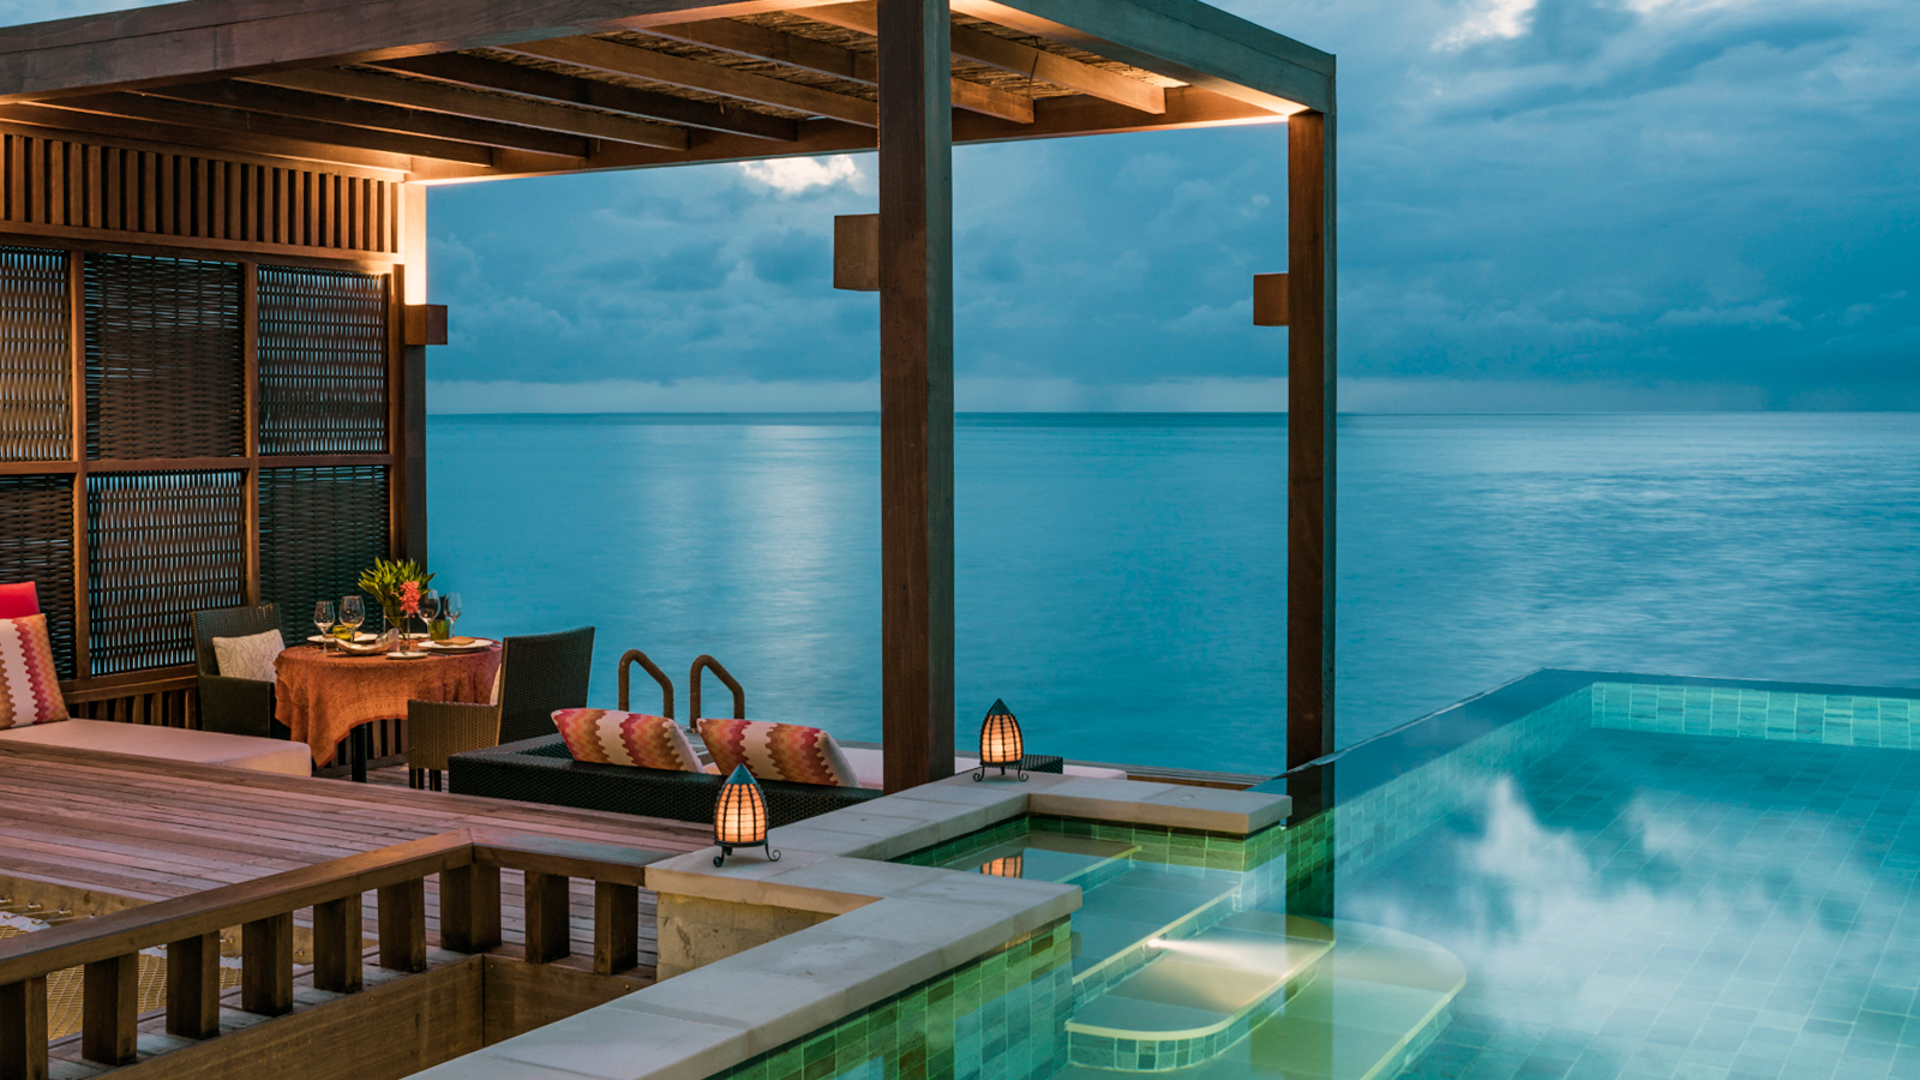 One bedroom water villa. Image courtesy to Four Seasons Kuda Huraa